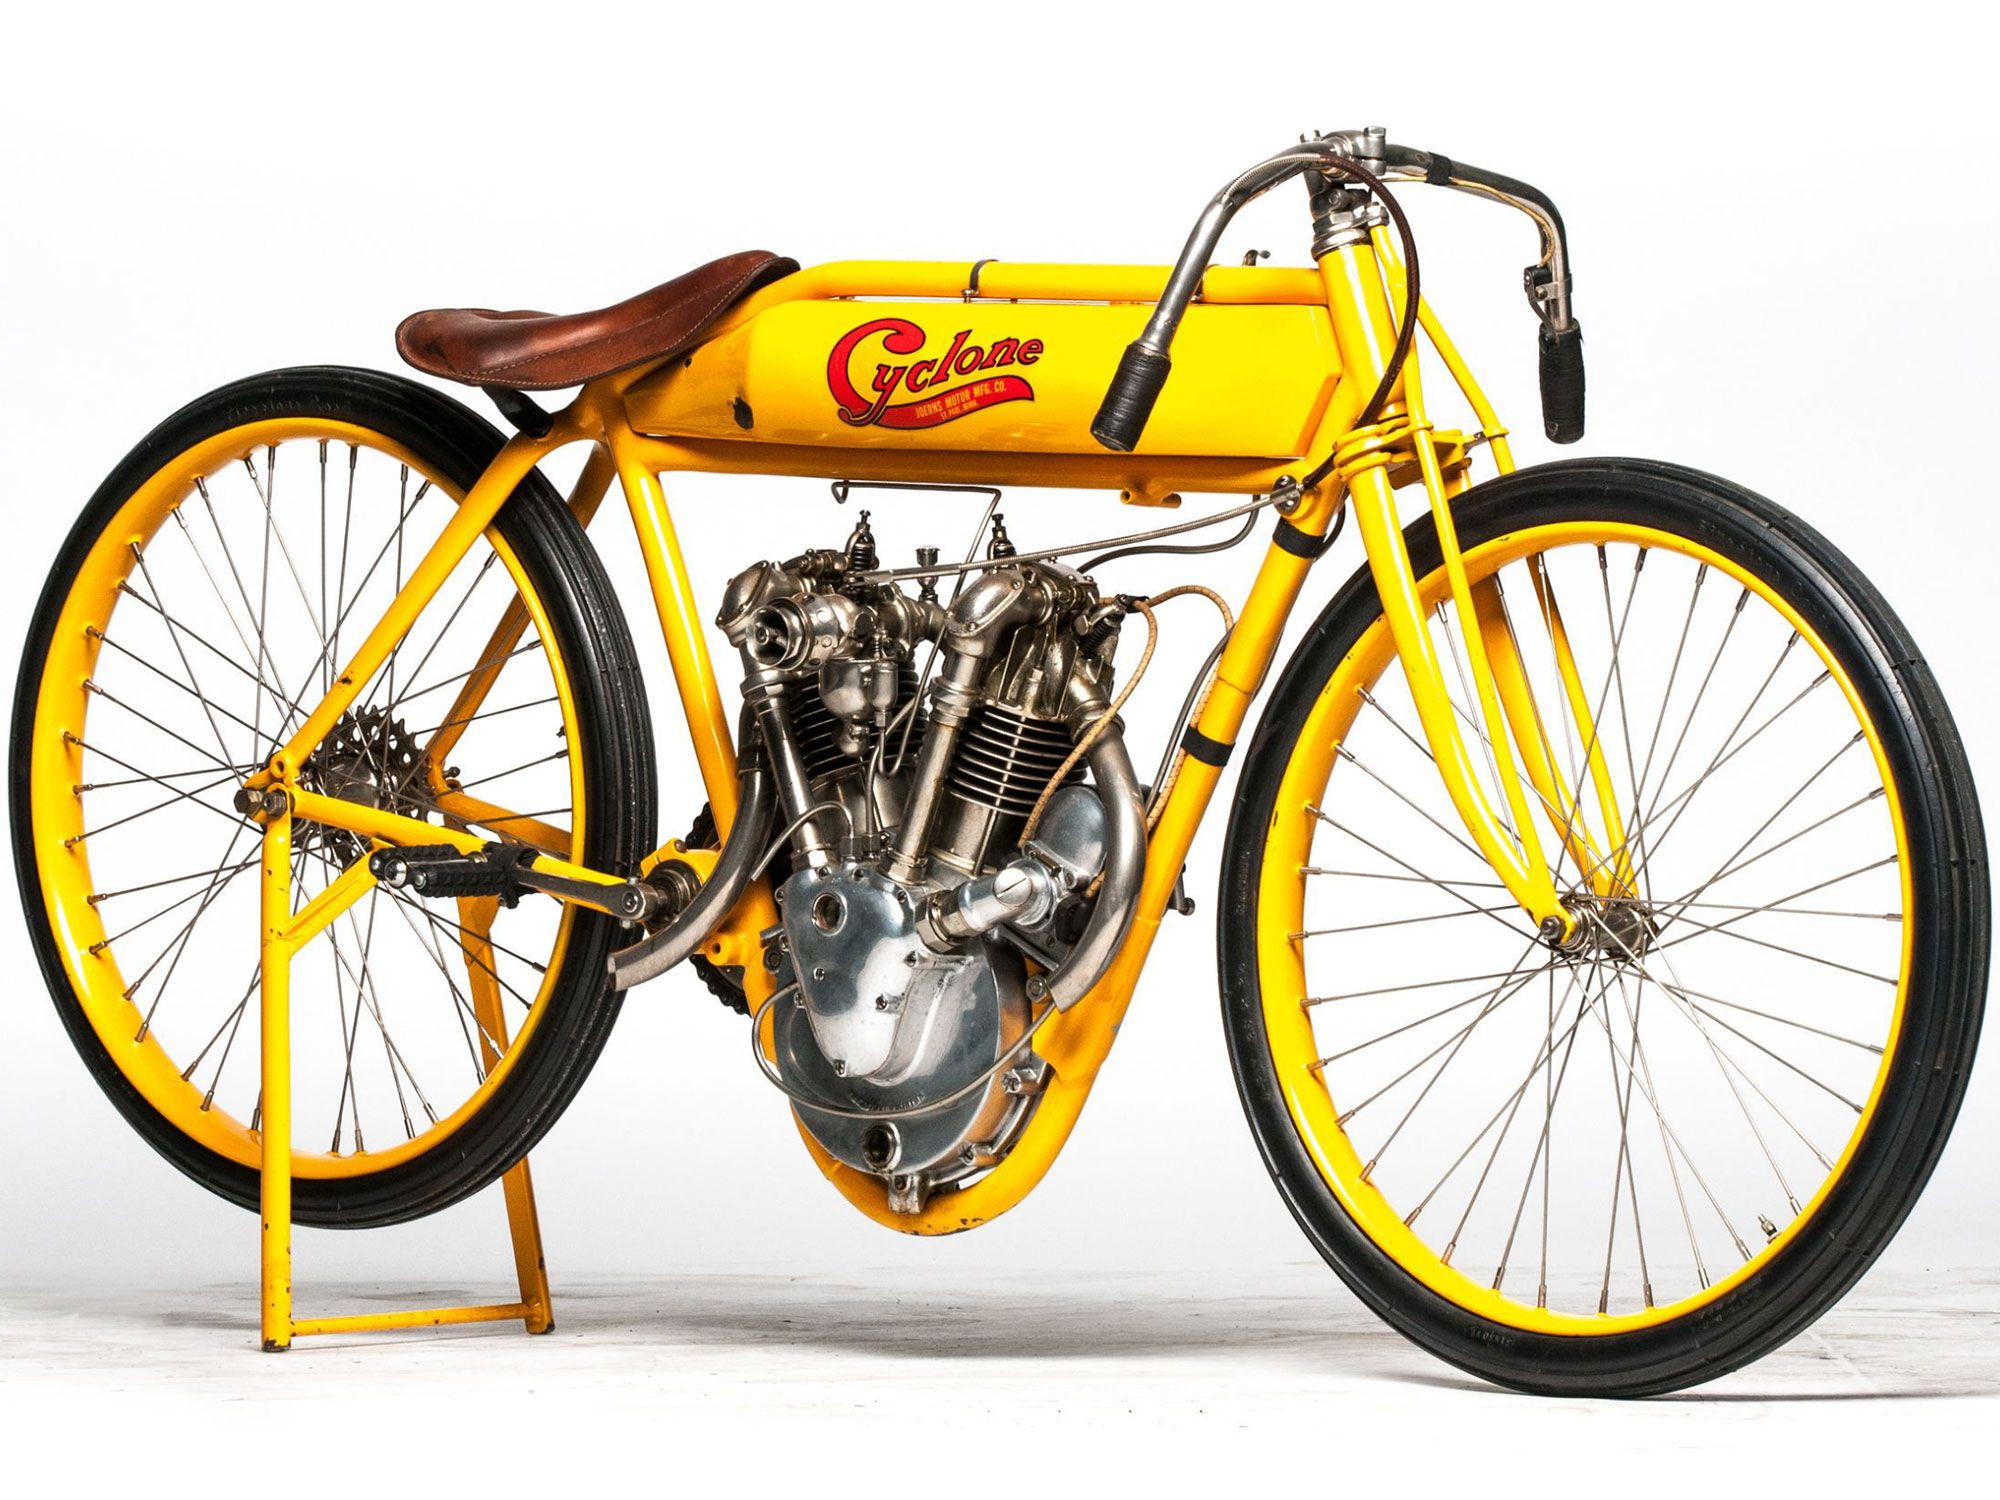 2. Steve McQueen once owned this 1915 Cyclone board track racer, pushing its value way up.